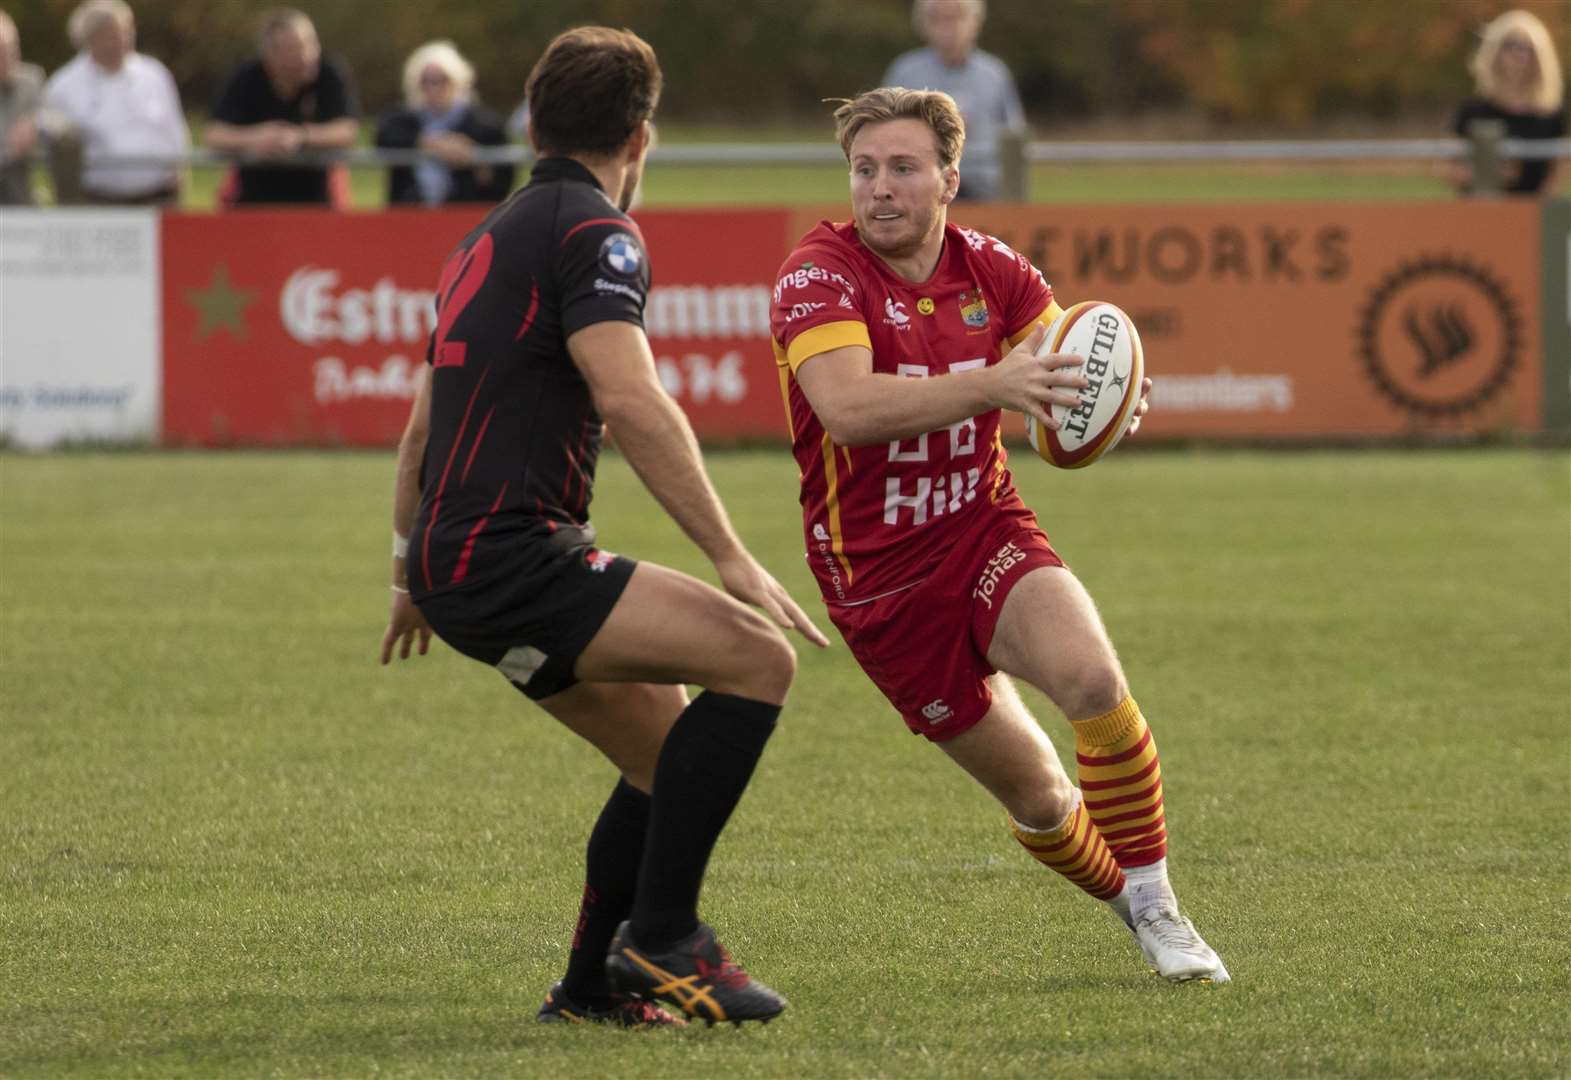 Cambridge undone by Ampthill in National League One